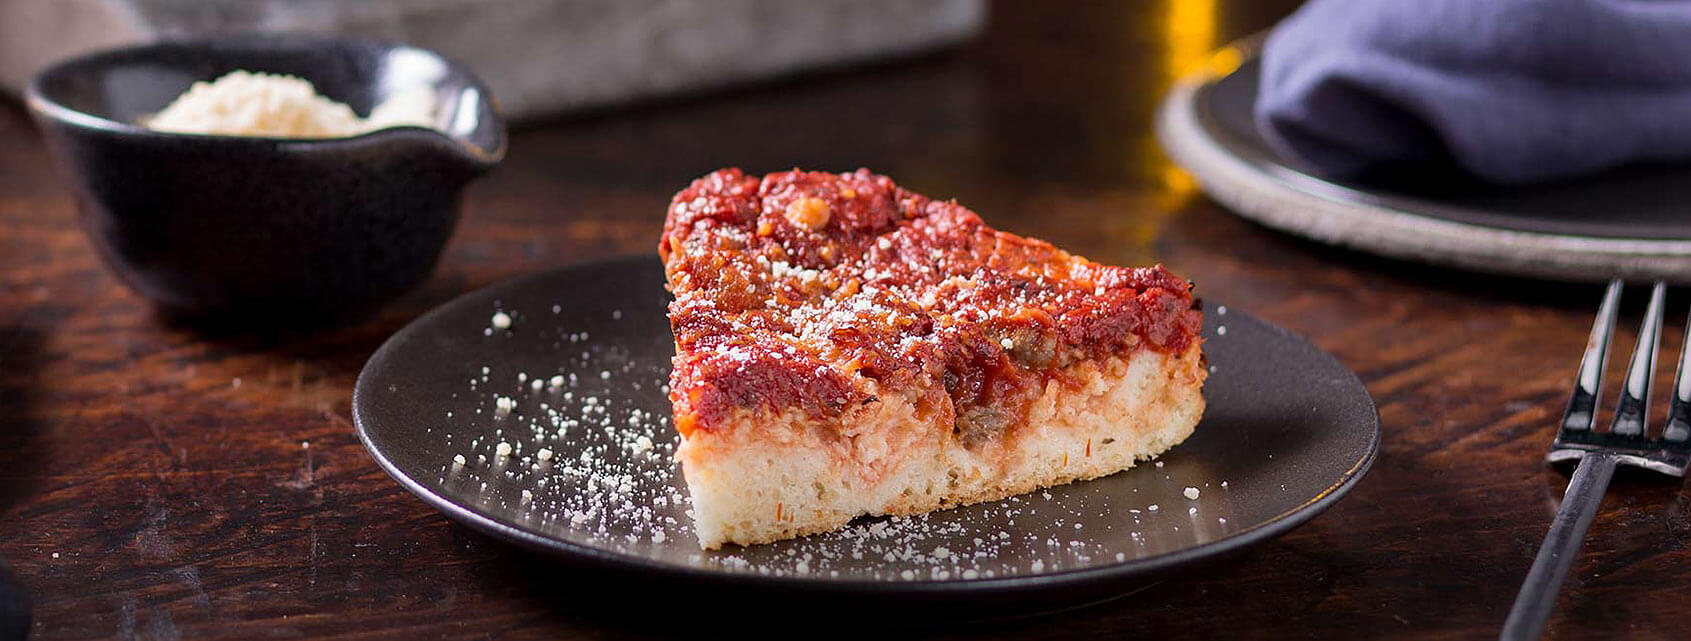 couples-meals-chicago-pizza.jpg